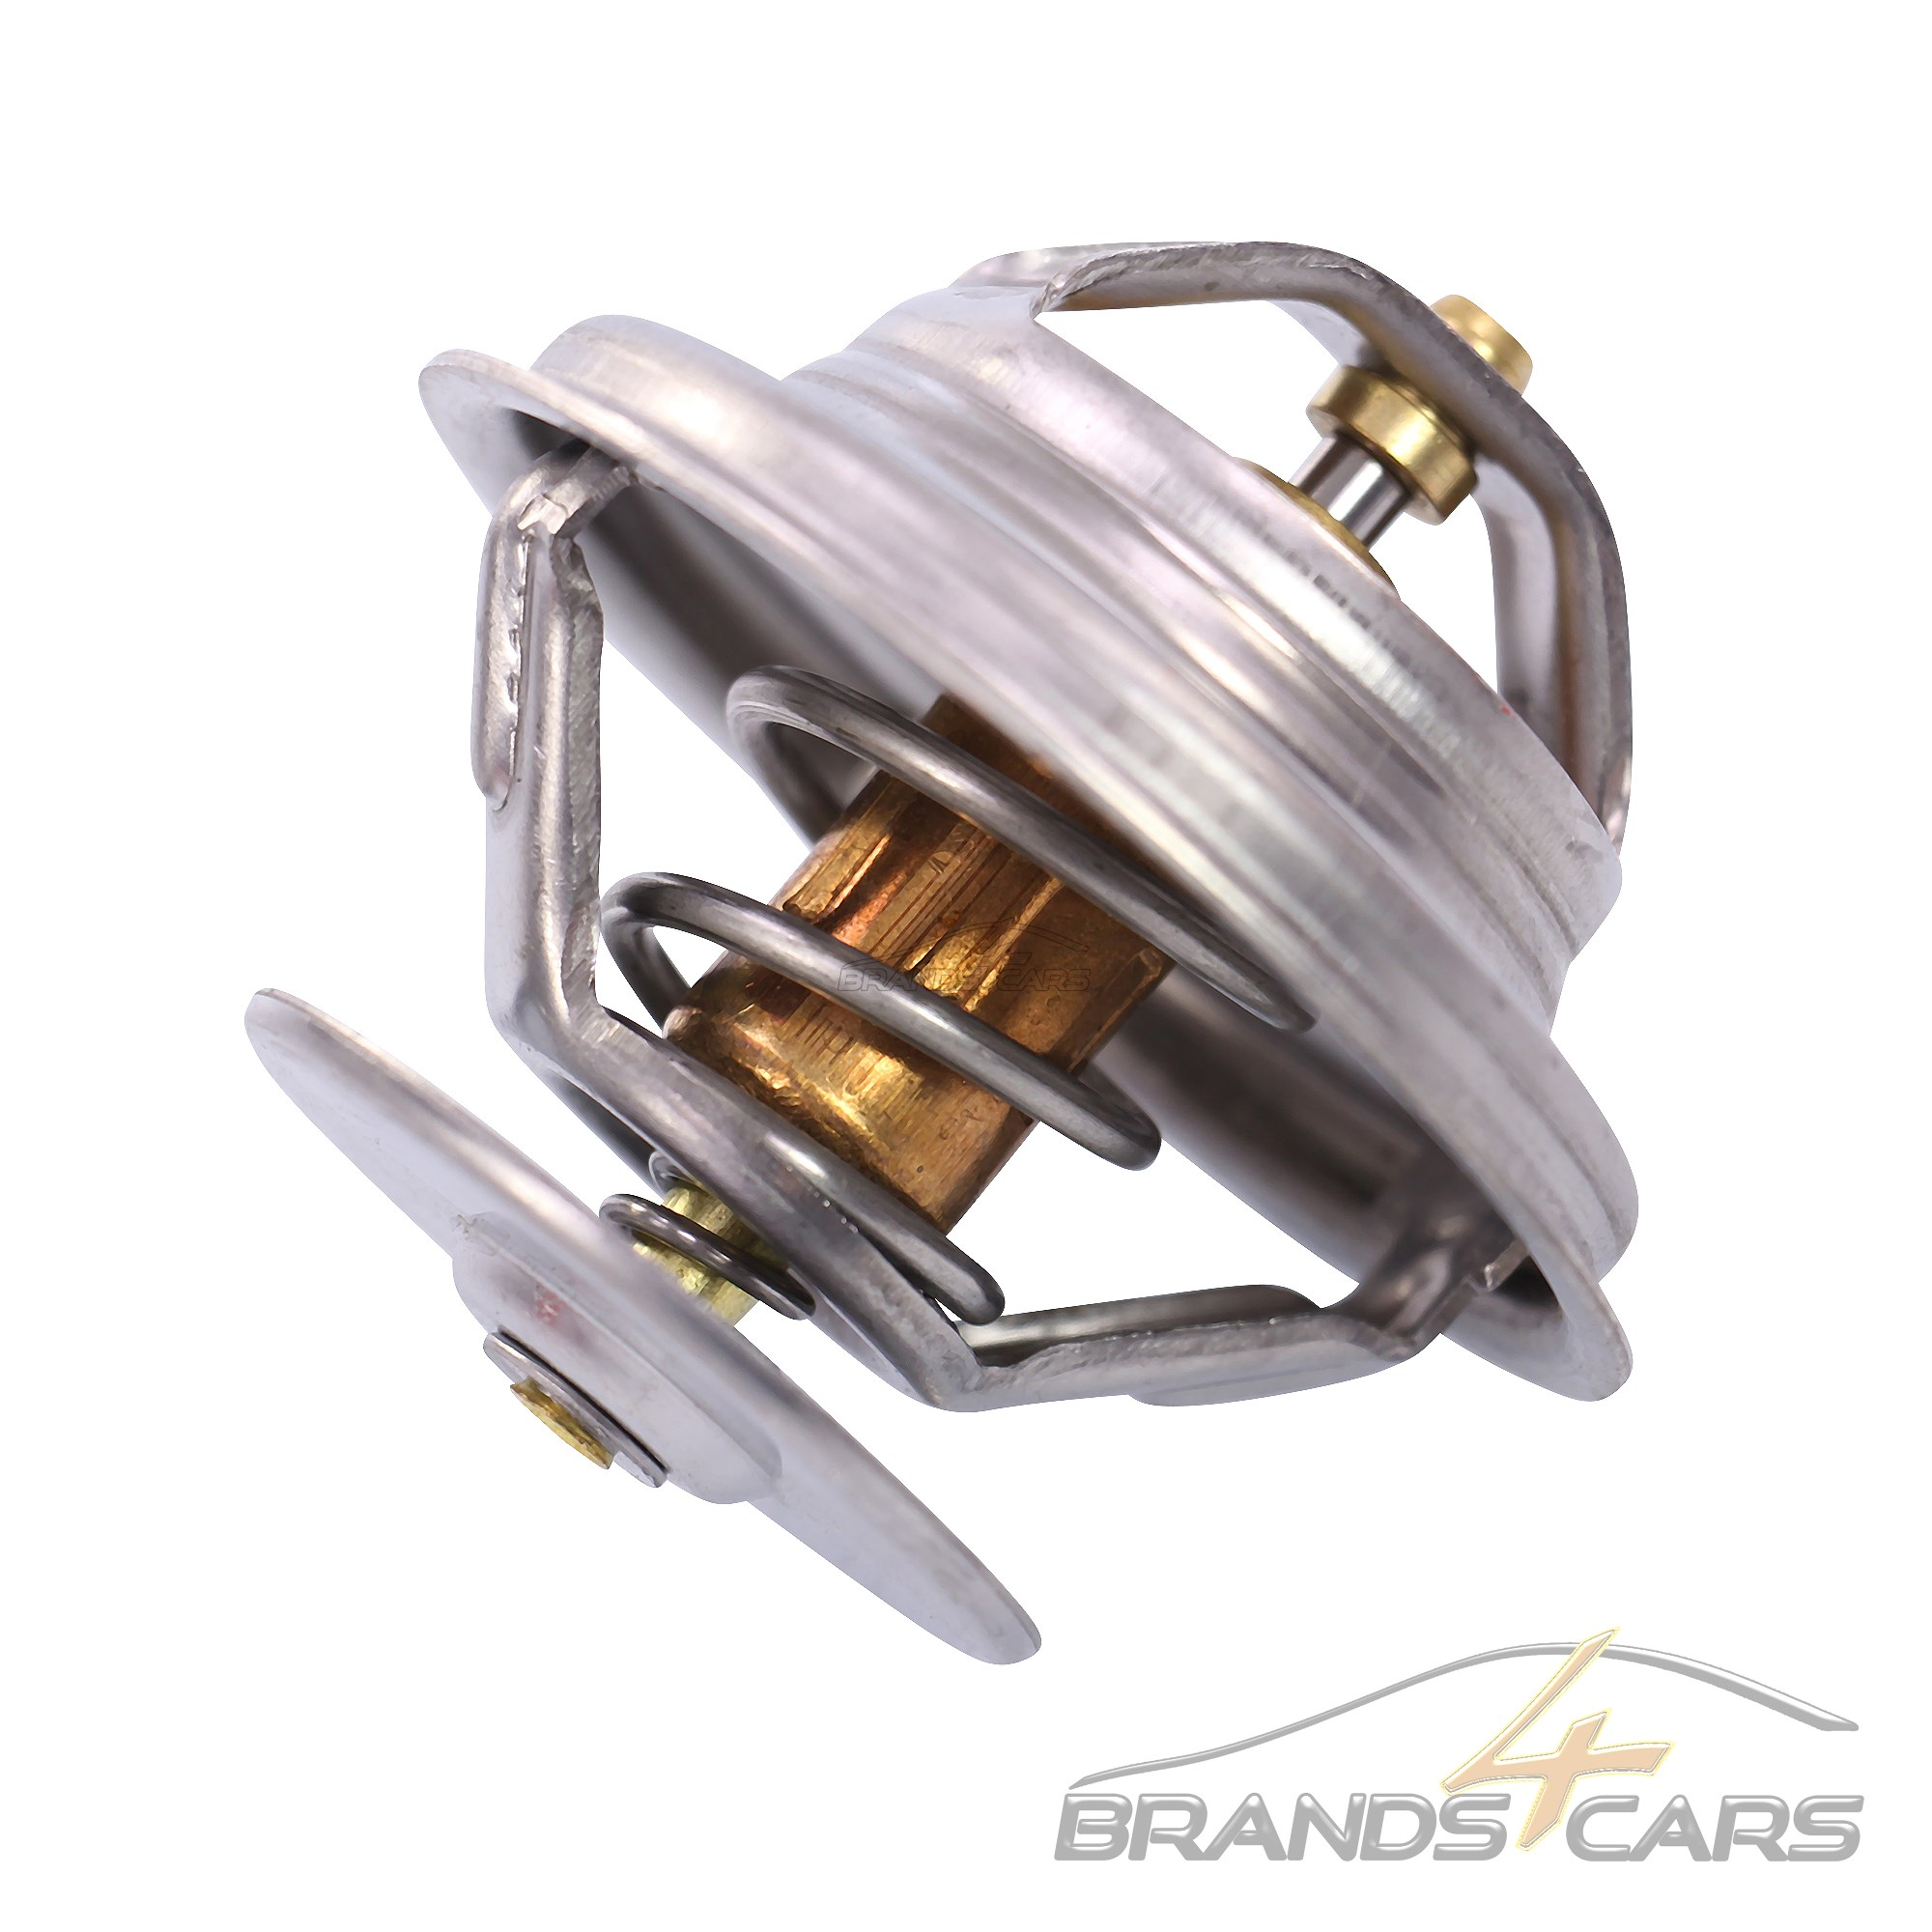 GATES THERMOSTAT FÜR FORD USA EXPLORER 4.0